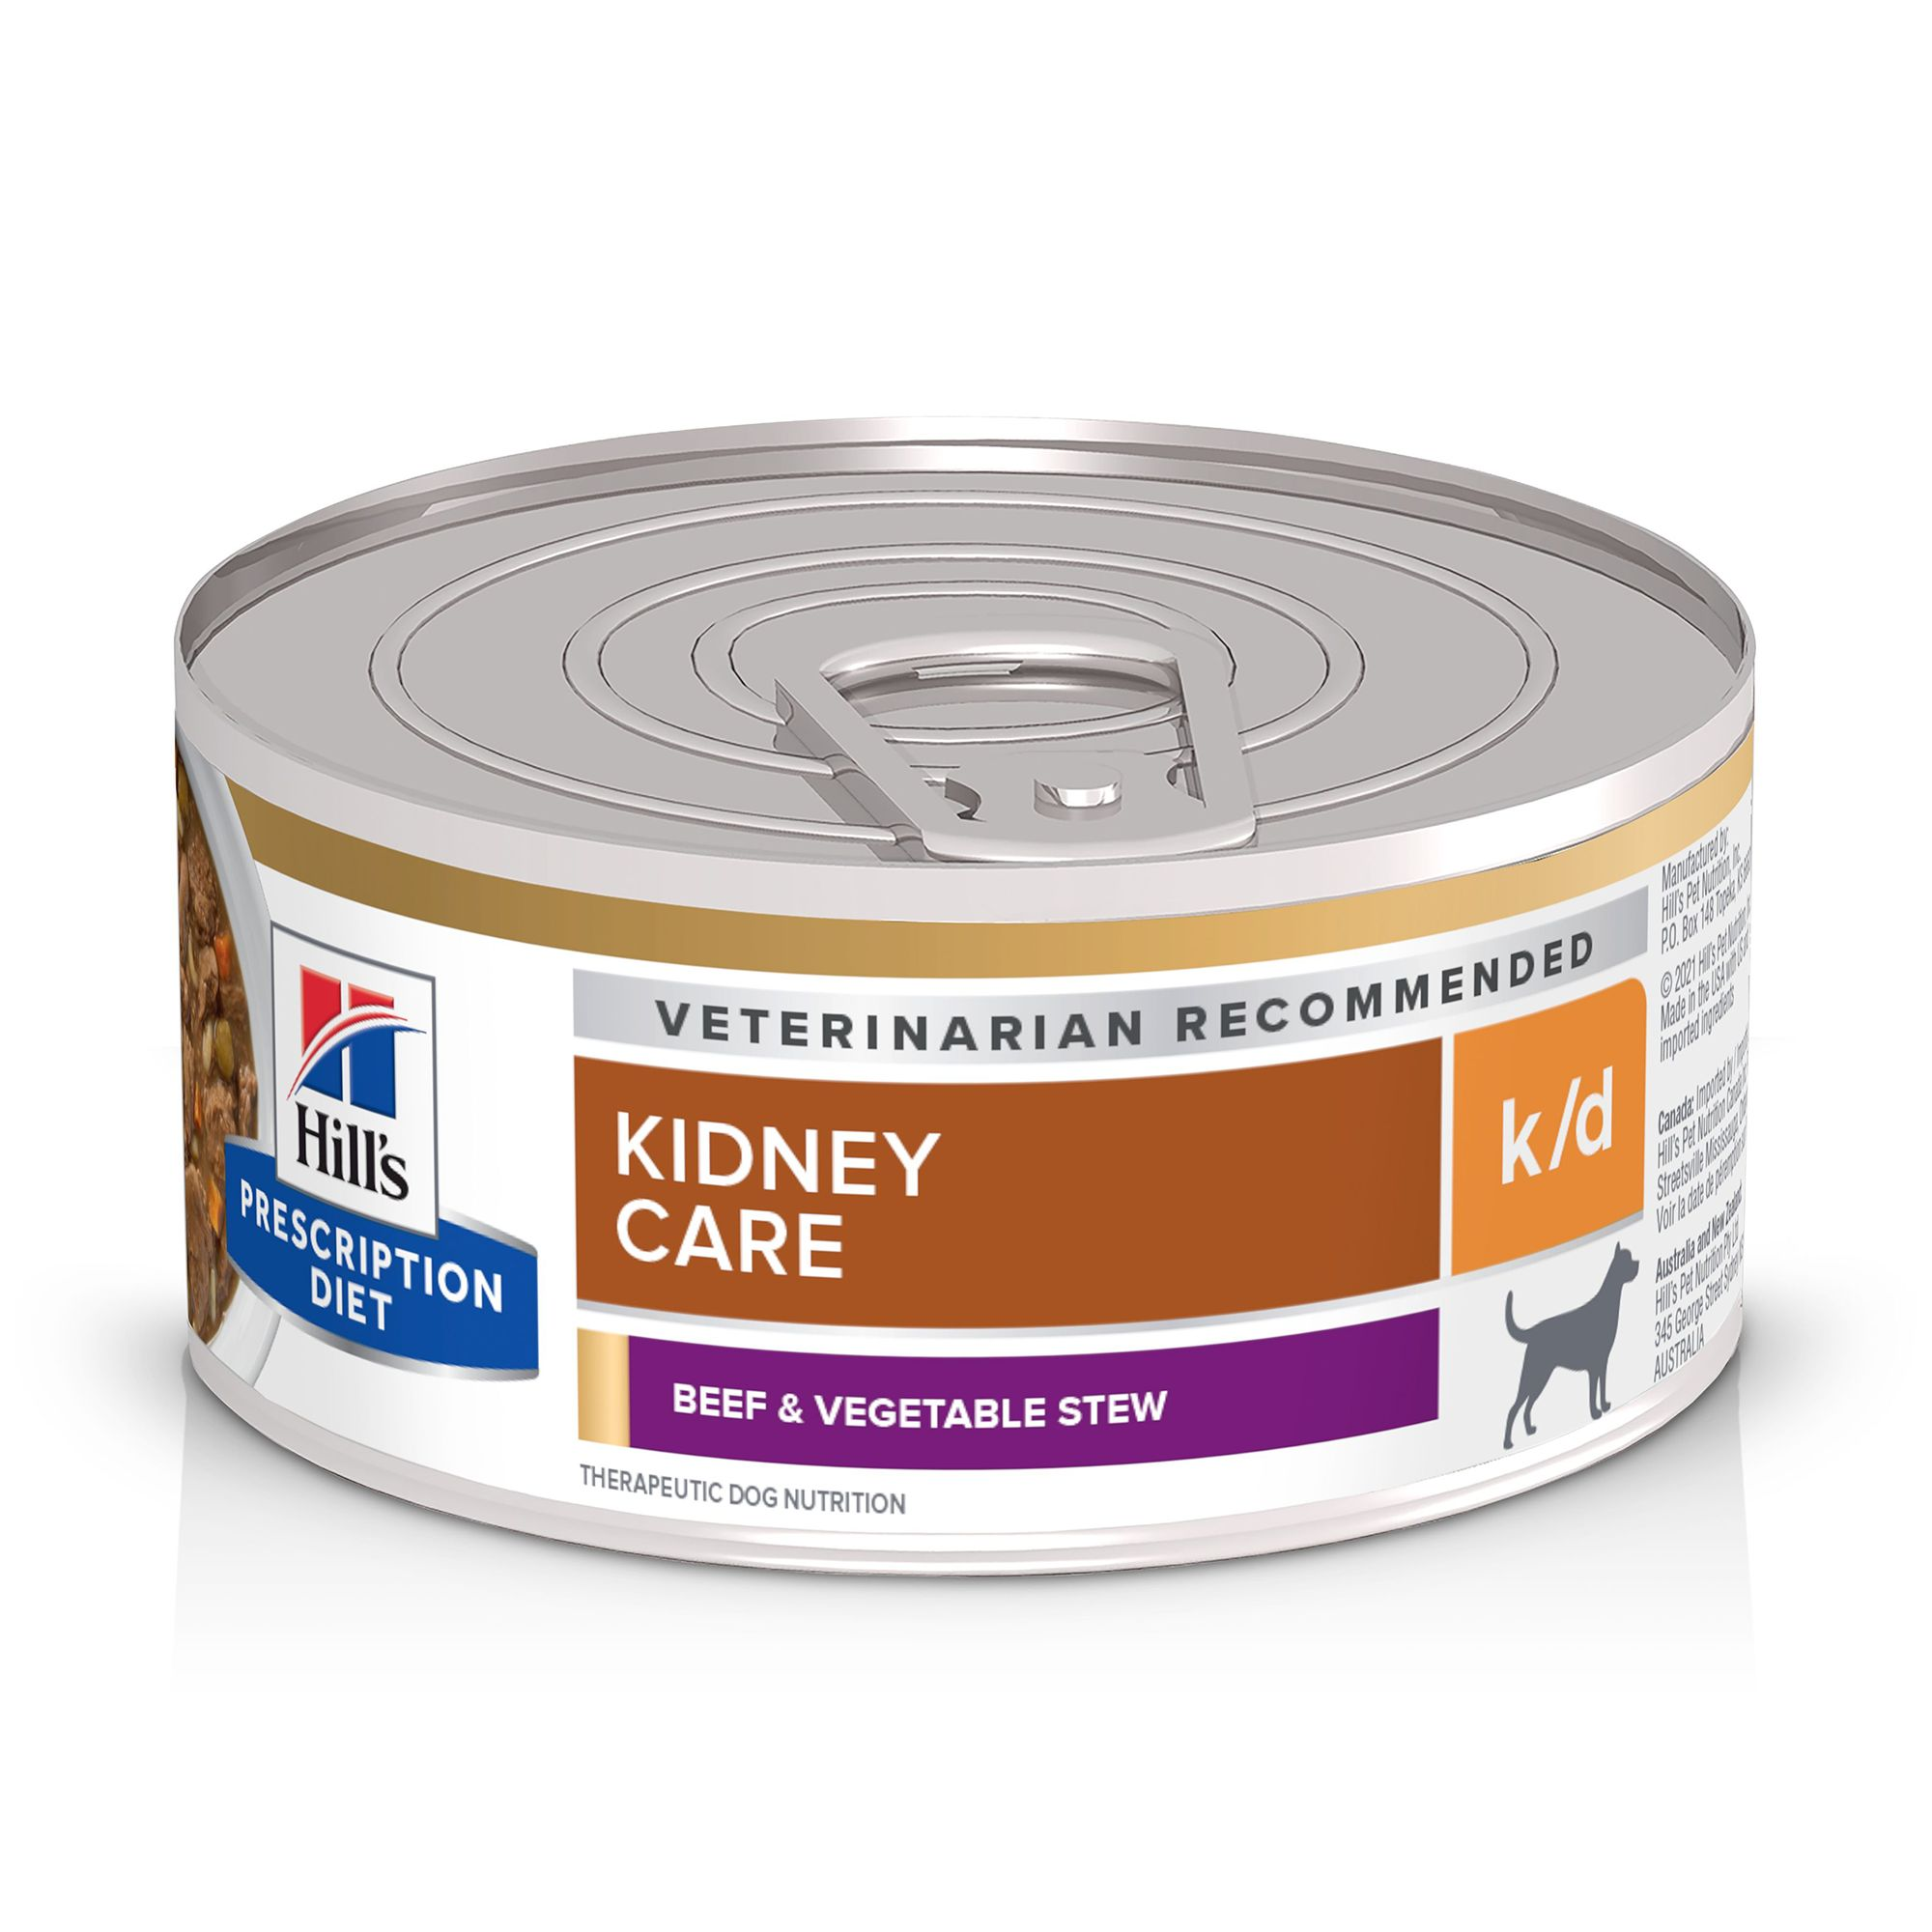 Hill's Medication Diet k/d Kidney Care Dog Food - Beef and Vegetable Stew size: 5.5 Oz, Adult, Mature Adult